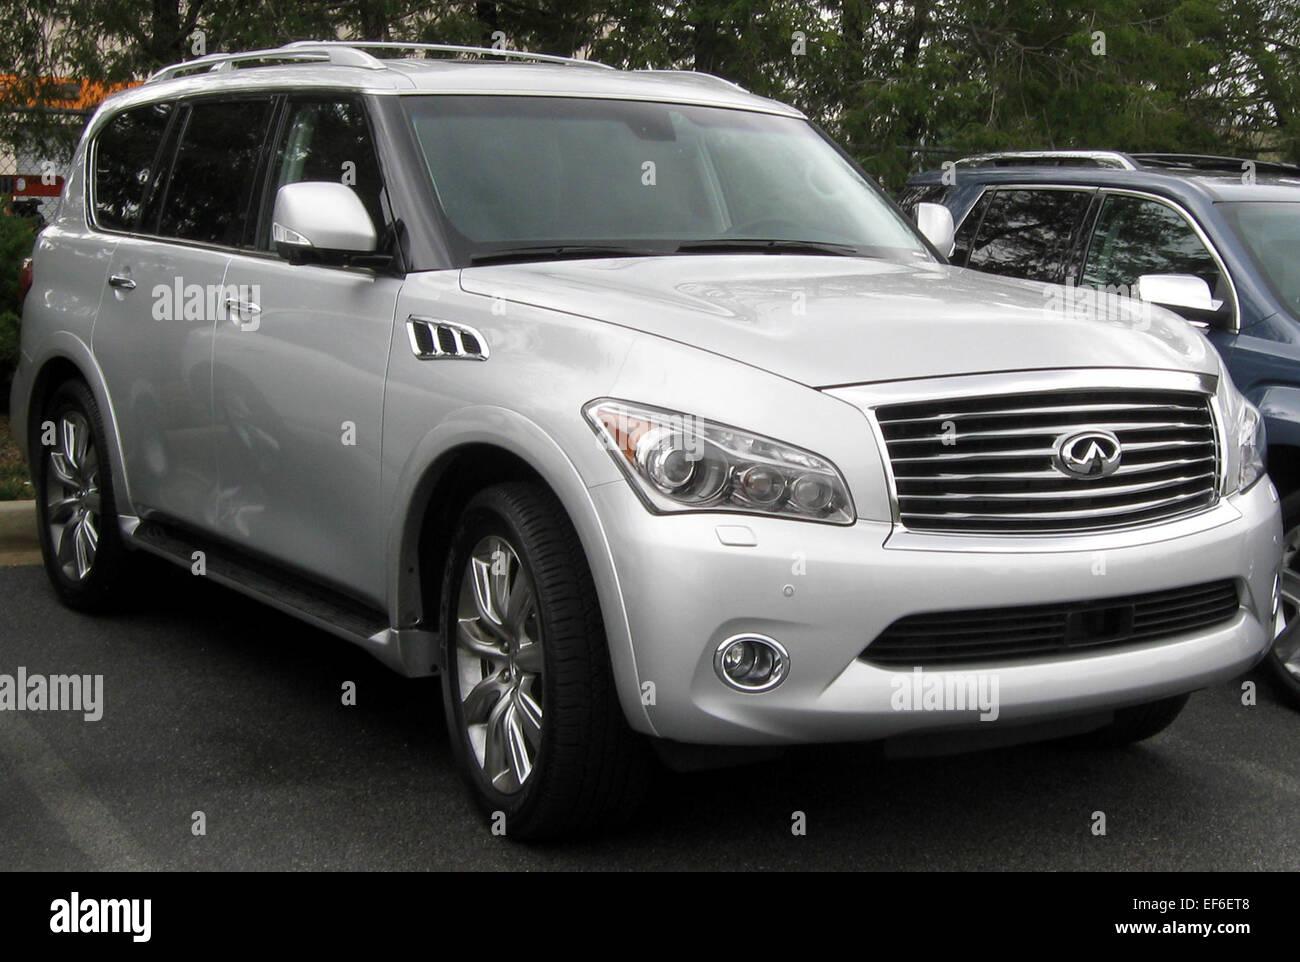 auctions sale cert gray copart in carfinder ga auto en online of infinity for left view savannah on title lot salvage infiniti